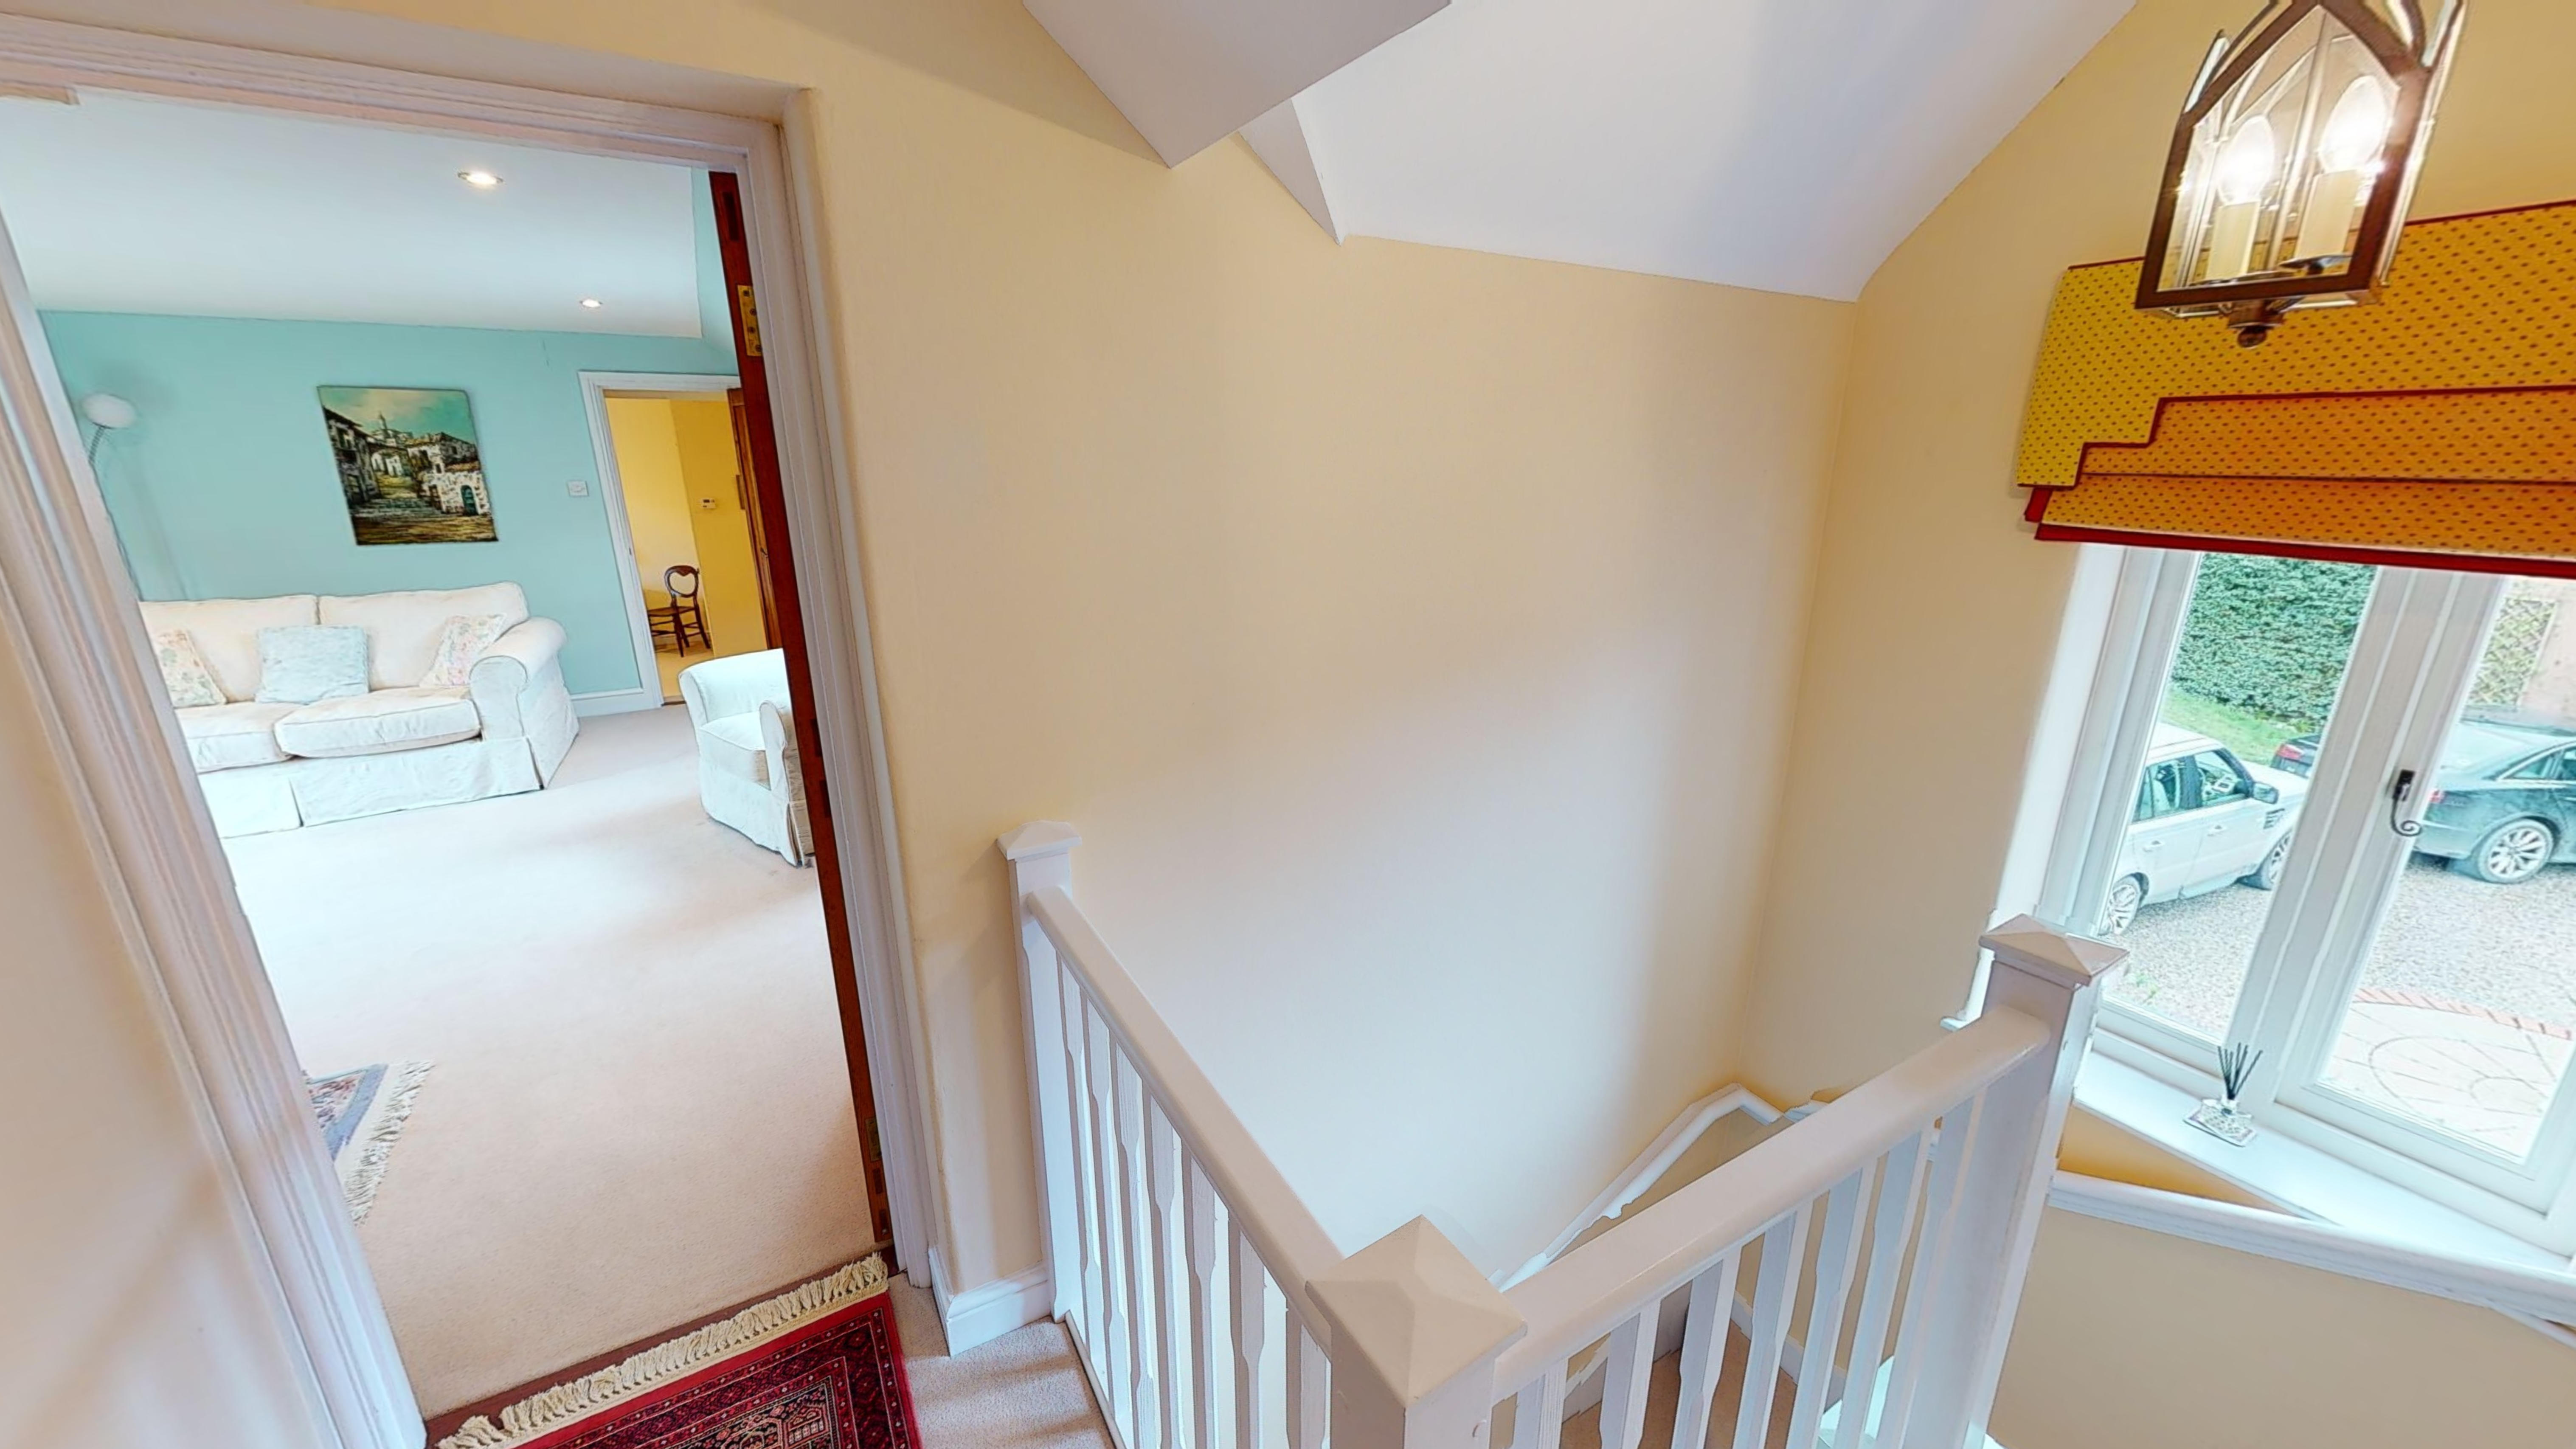 Coxes Cottage 03032020 192216 Hall